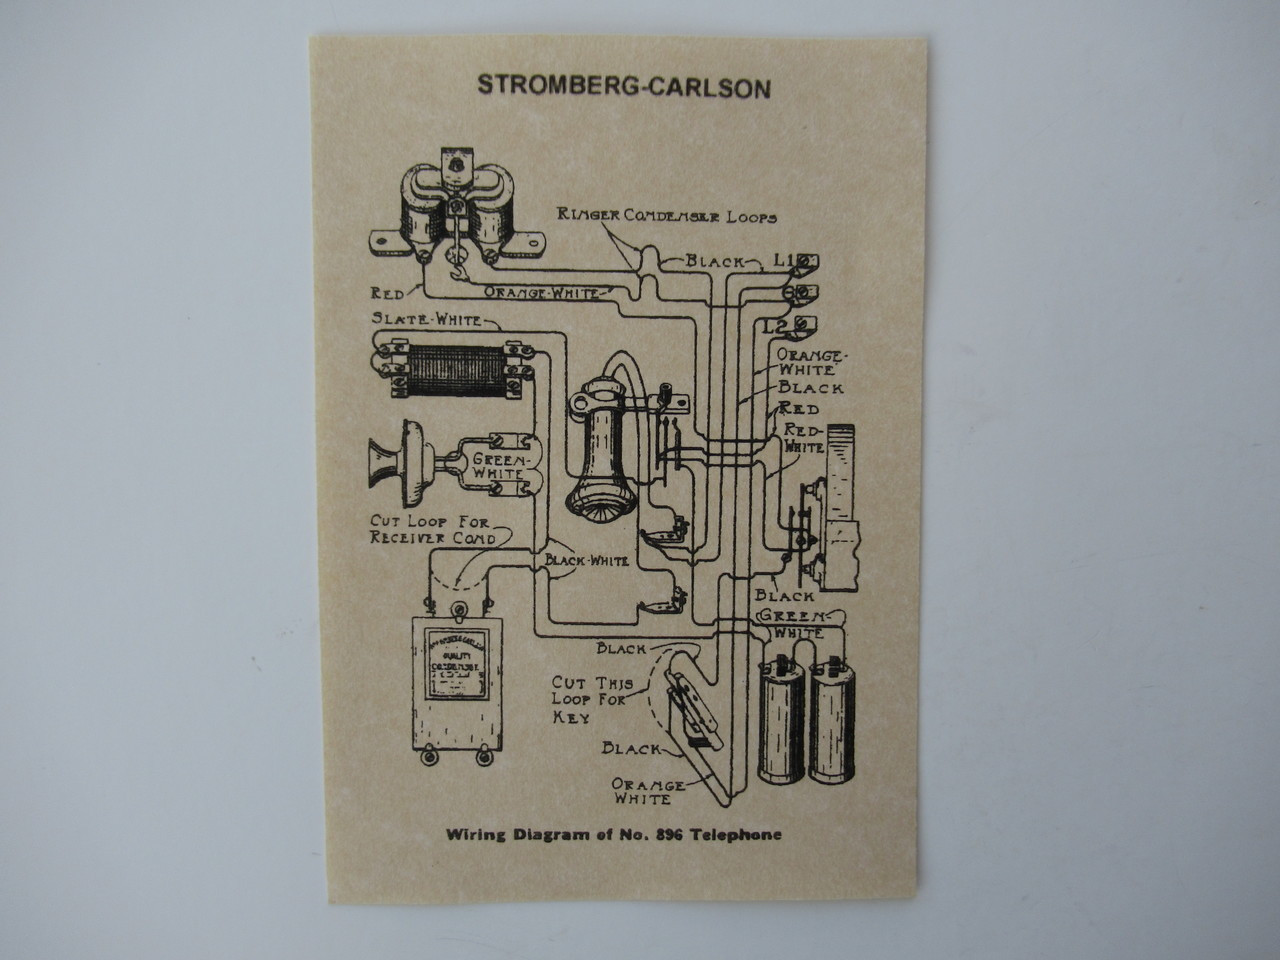 stromberg carlson glue in wiring diagram for wood wall phones old woodworking shop wiring diagrams [ 1280 x 960 Pixel ]